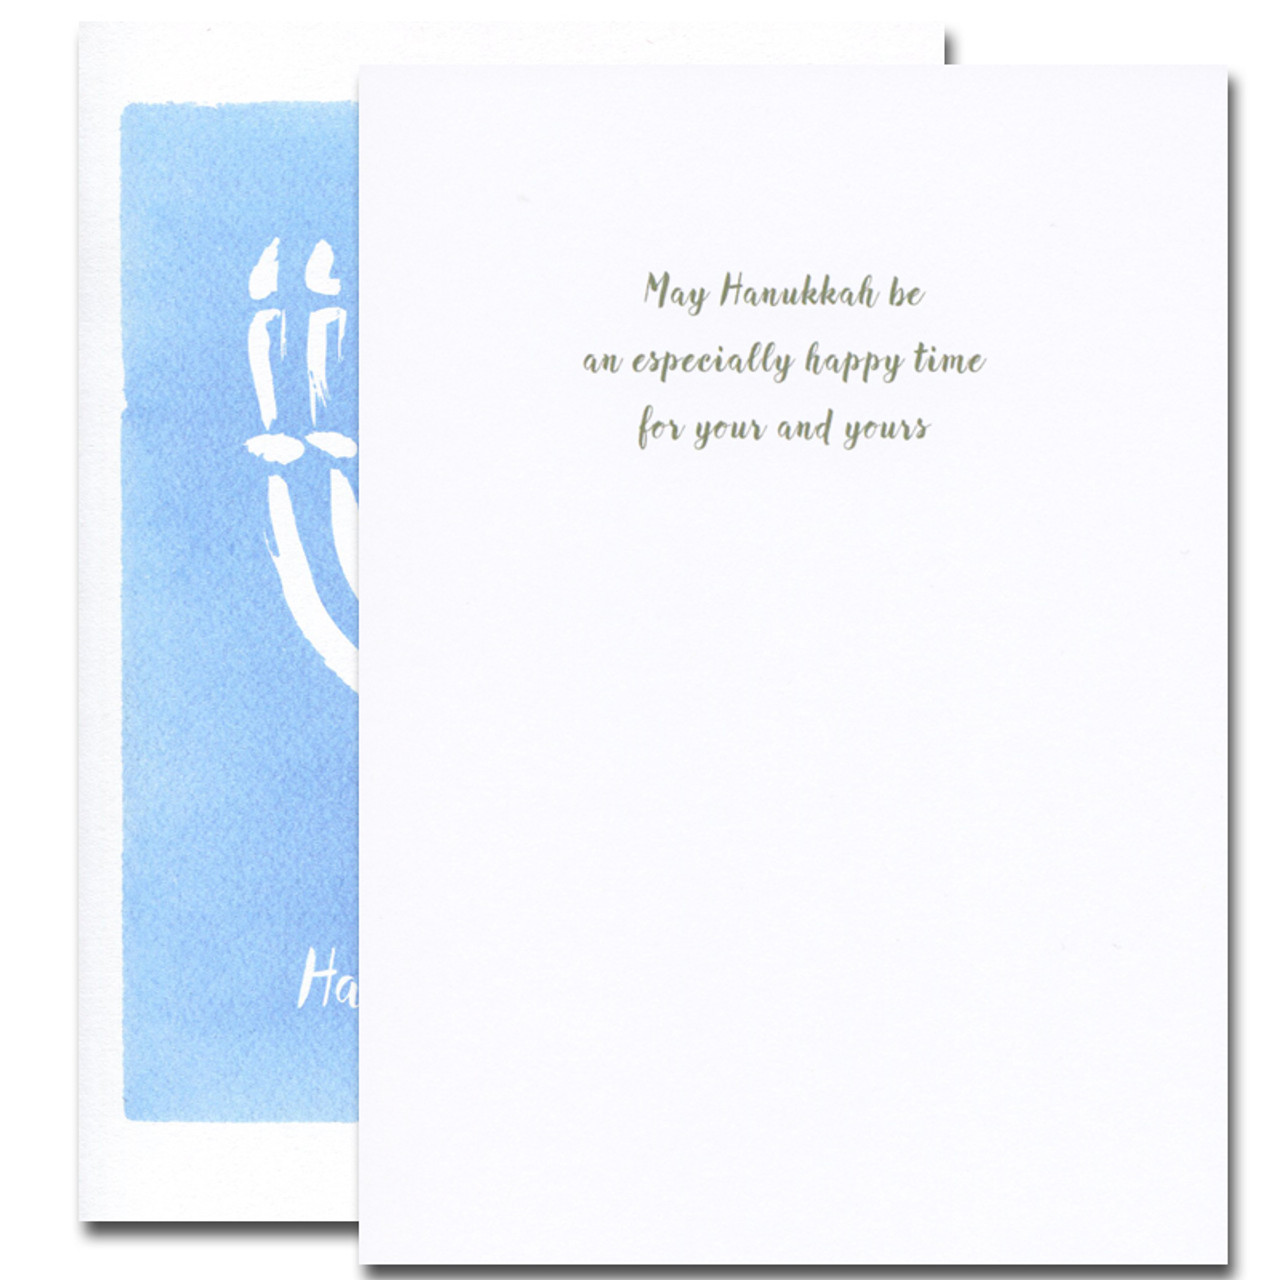 Hanukkah Card - Happy Time inside reads: May Hanukkah be an especially happy time for you and yours